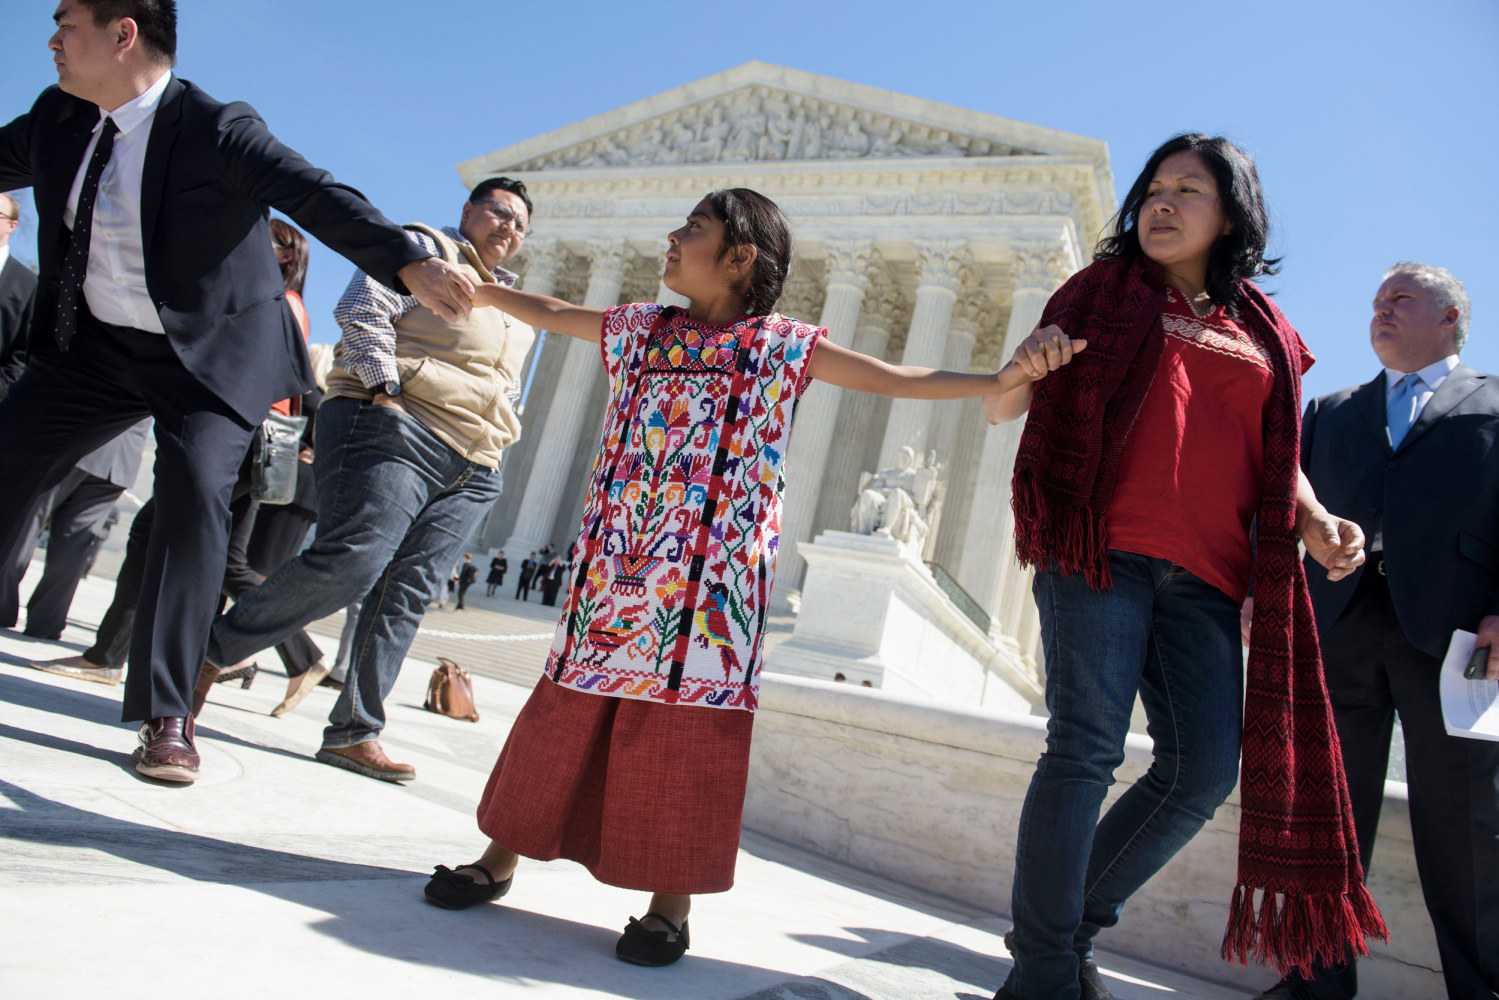 Supreme Court: Immigration, Abortion Cases Pending in Final Days of Term